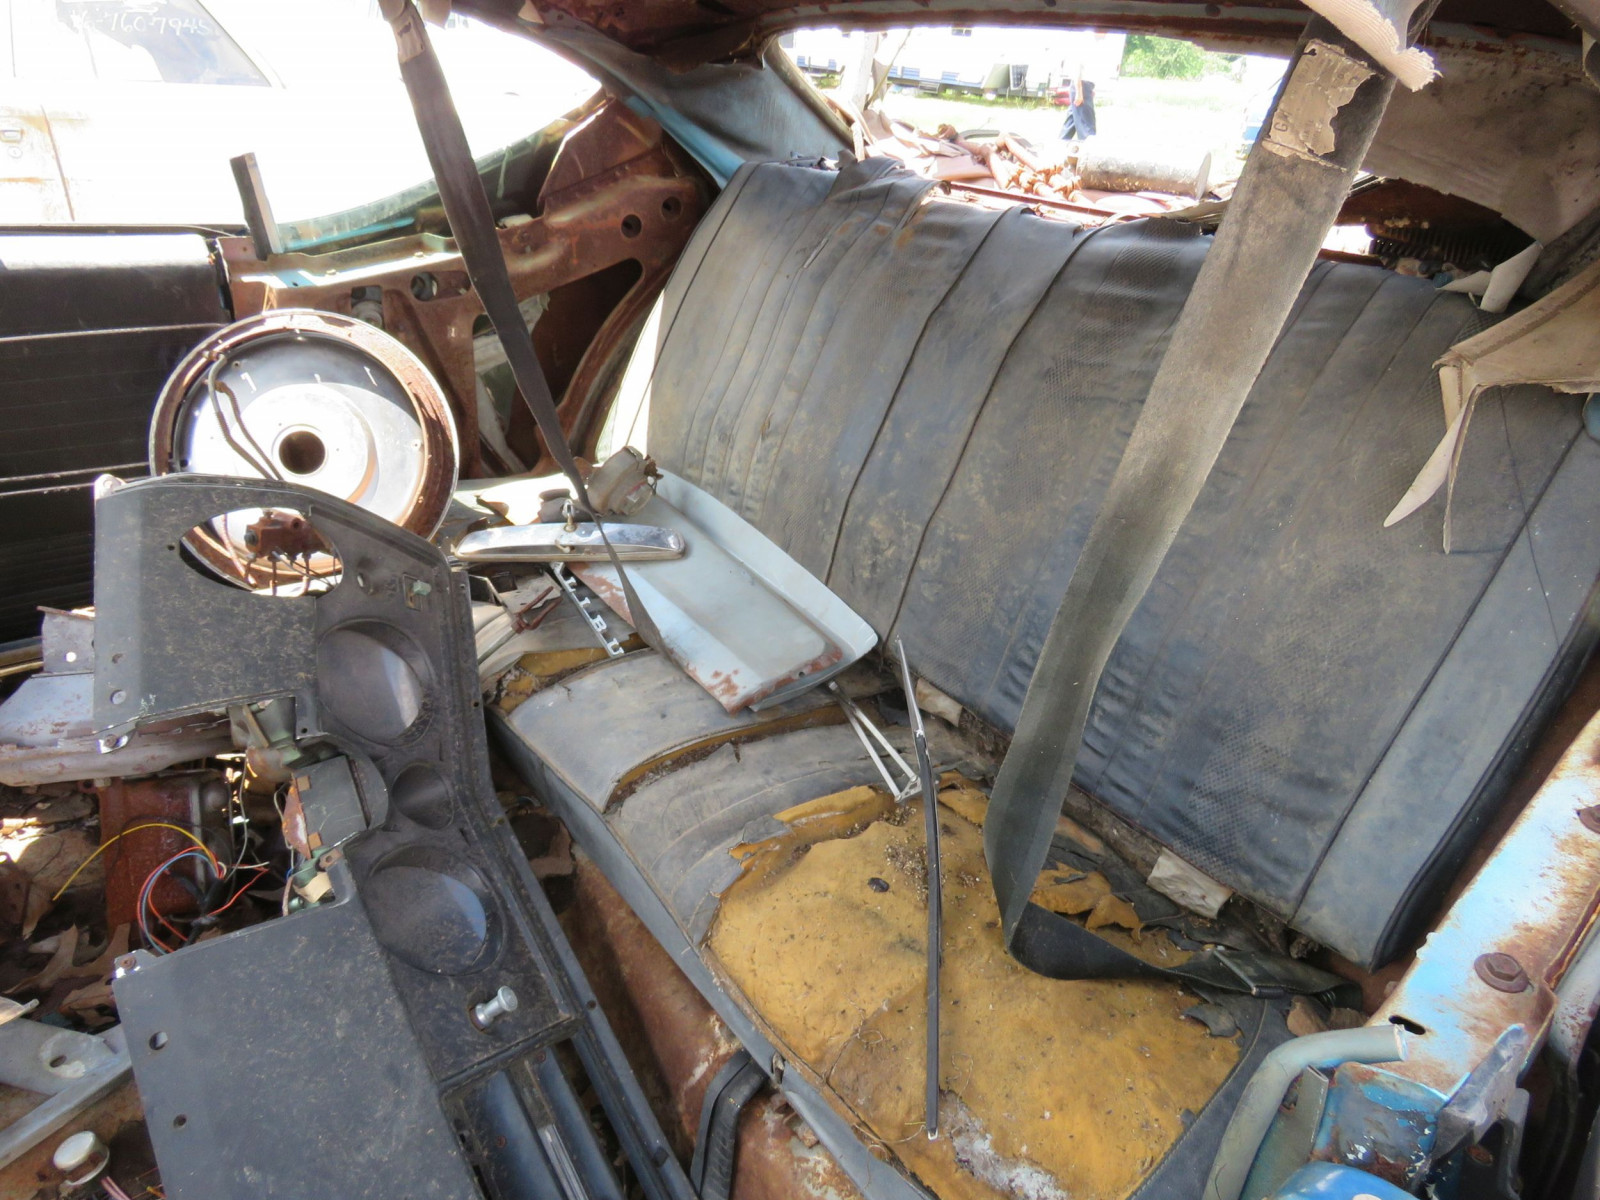 1969 Chevrolet Chevelle Rolling Body for Project or Parts - Image 8